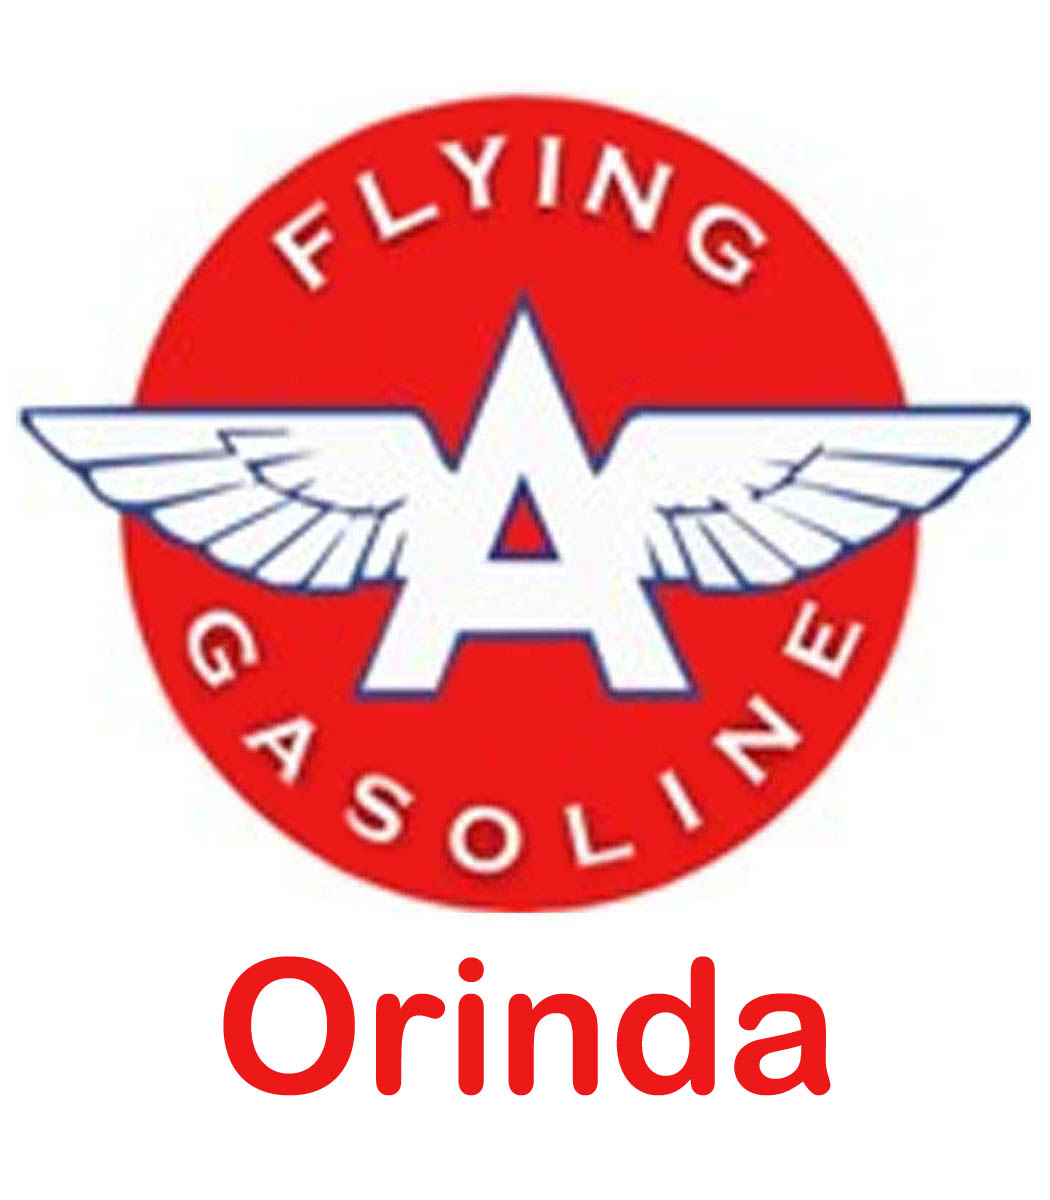 Flying A Gasoline: Old School Service in the Modern Era